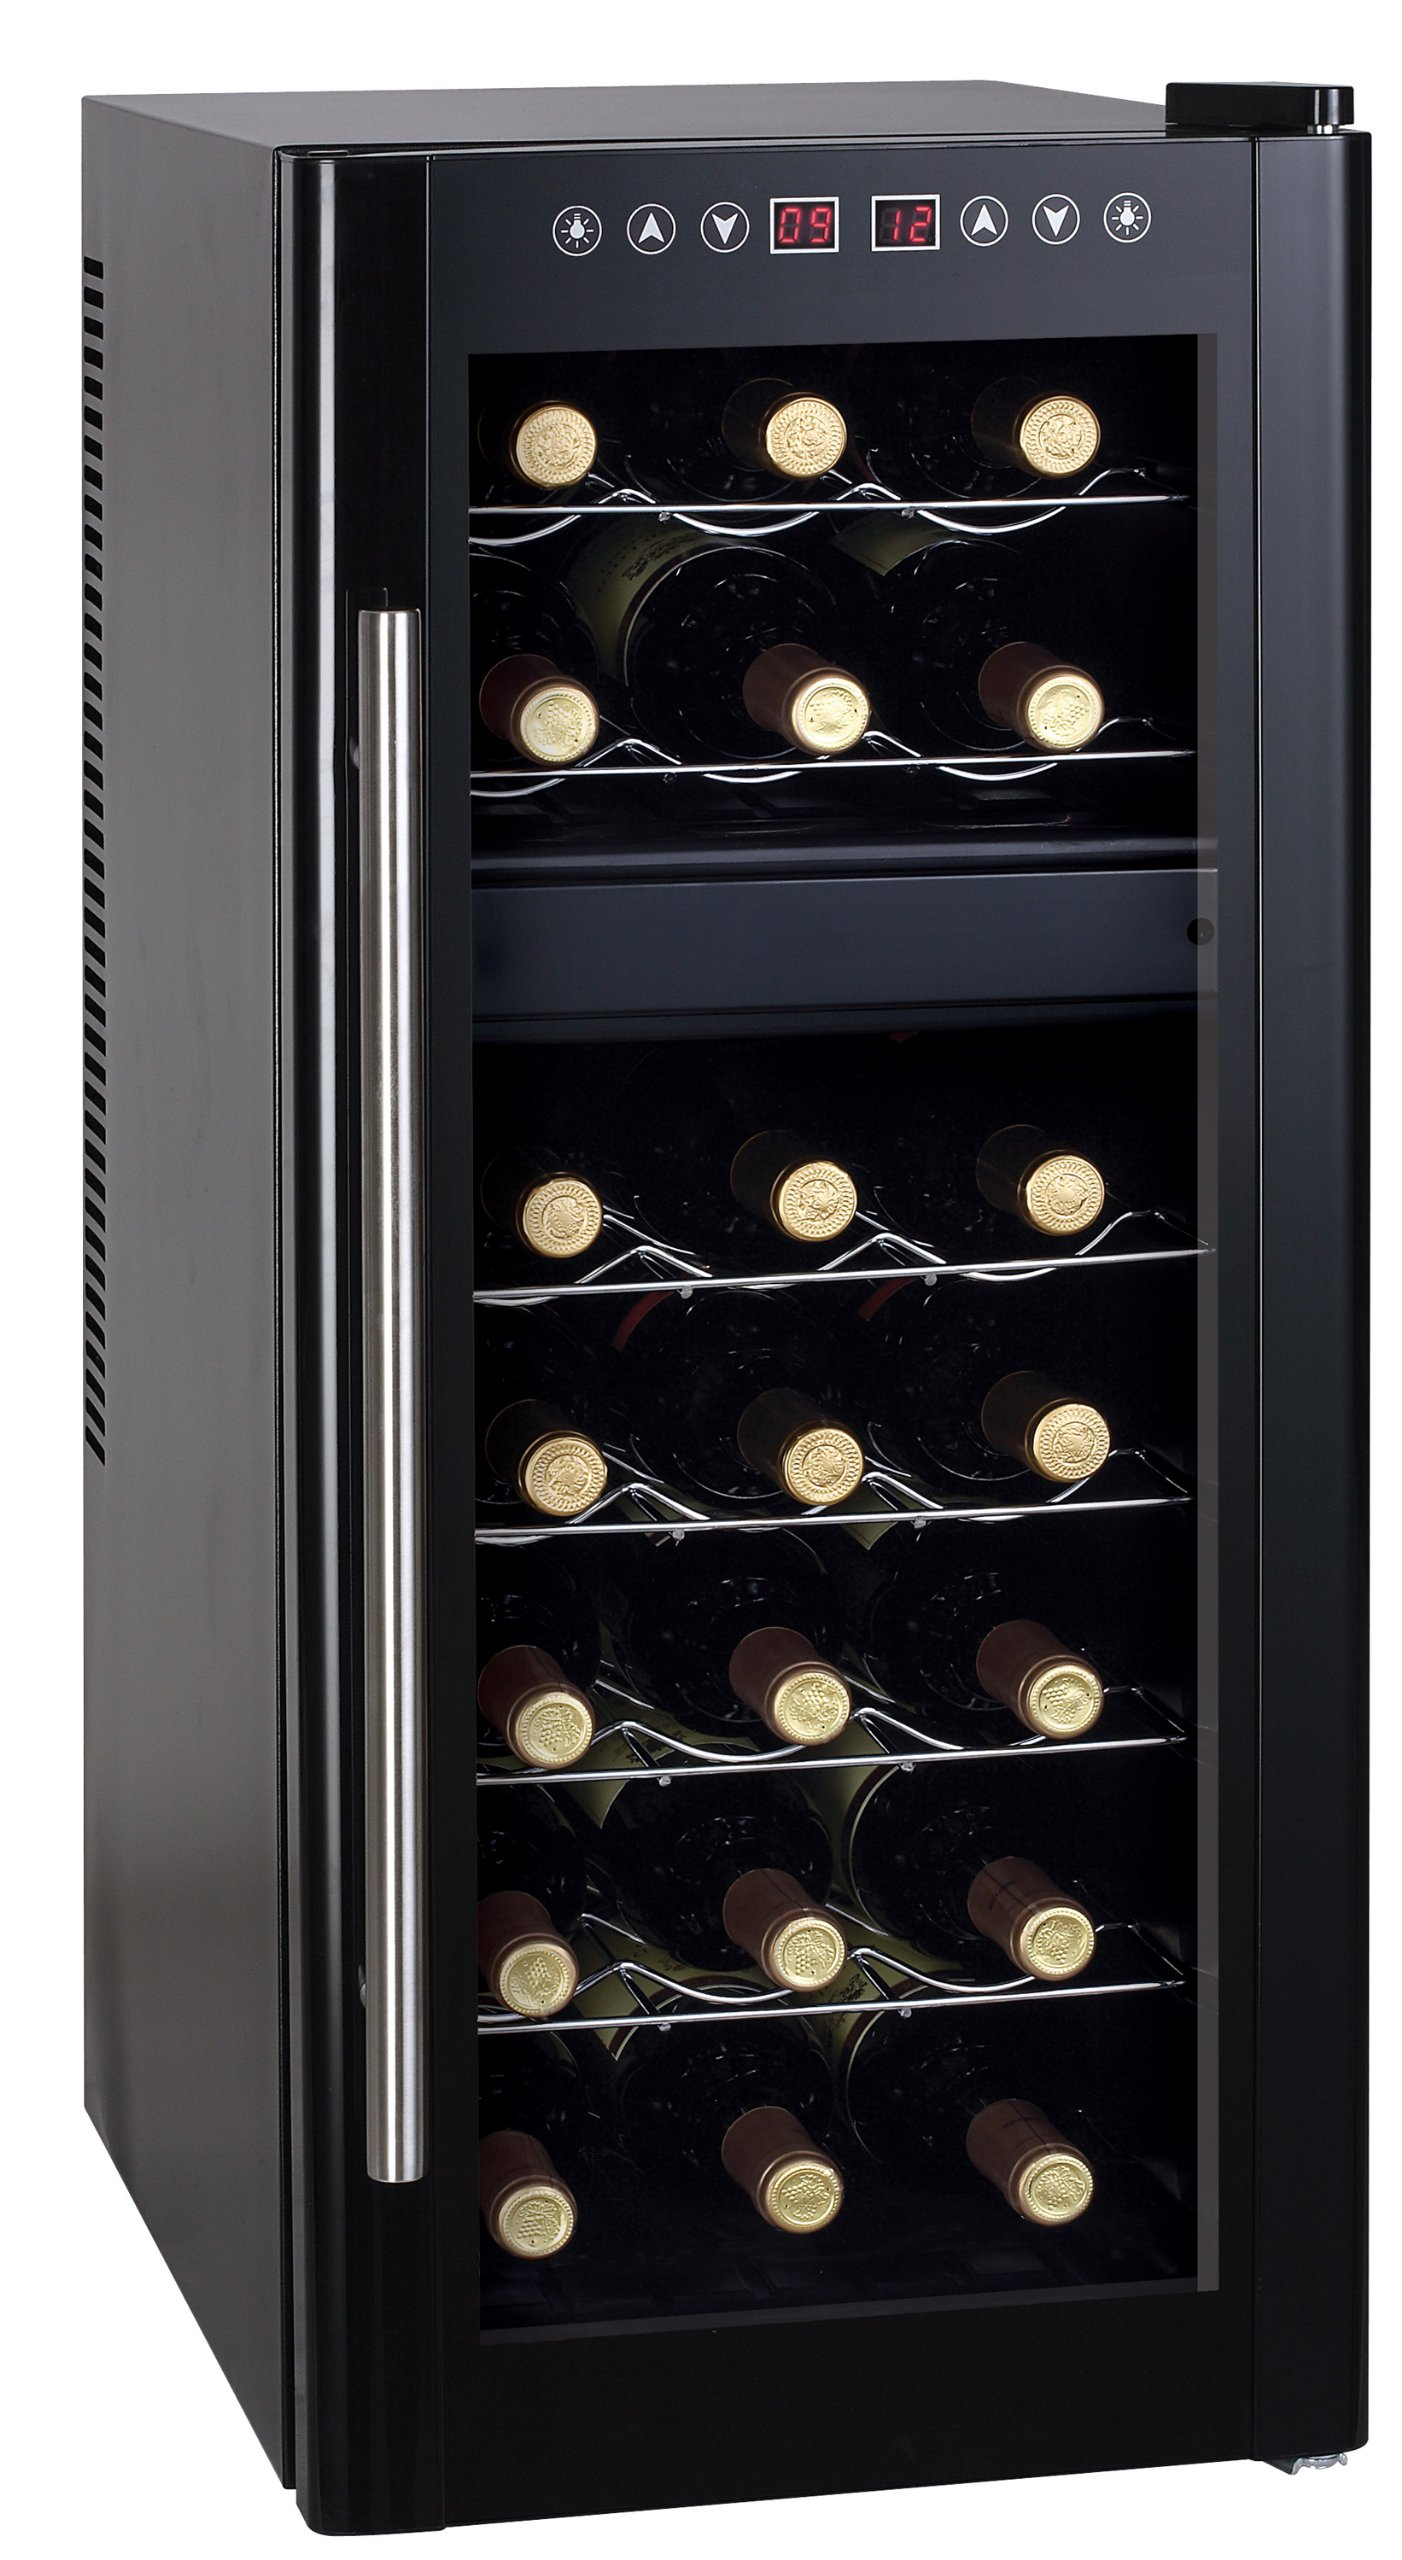 Spt Dual-Zone Thermo-Electric Wine Cooler with Heating, 21-Bottles by SPT